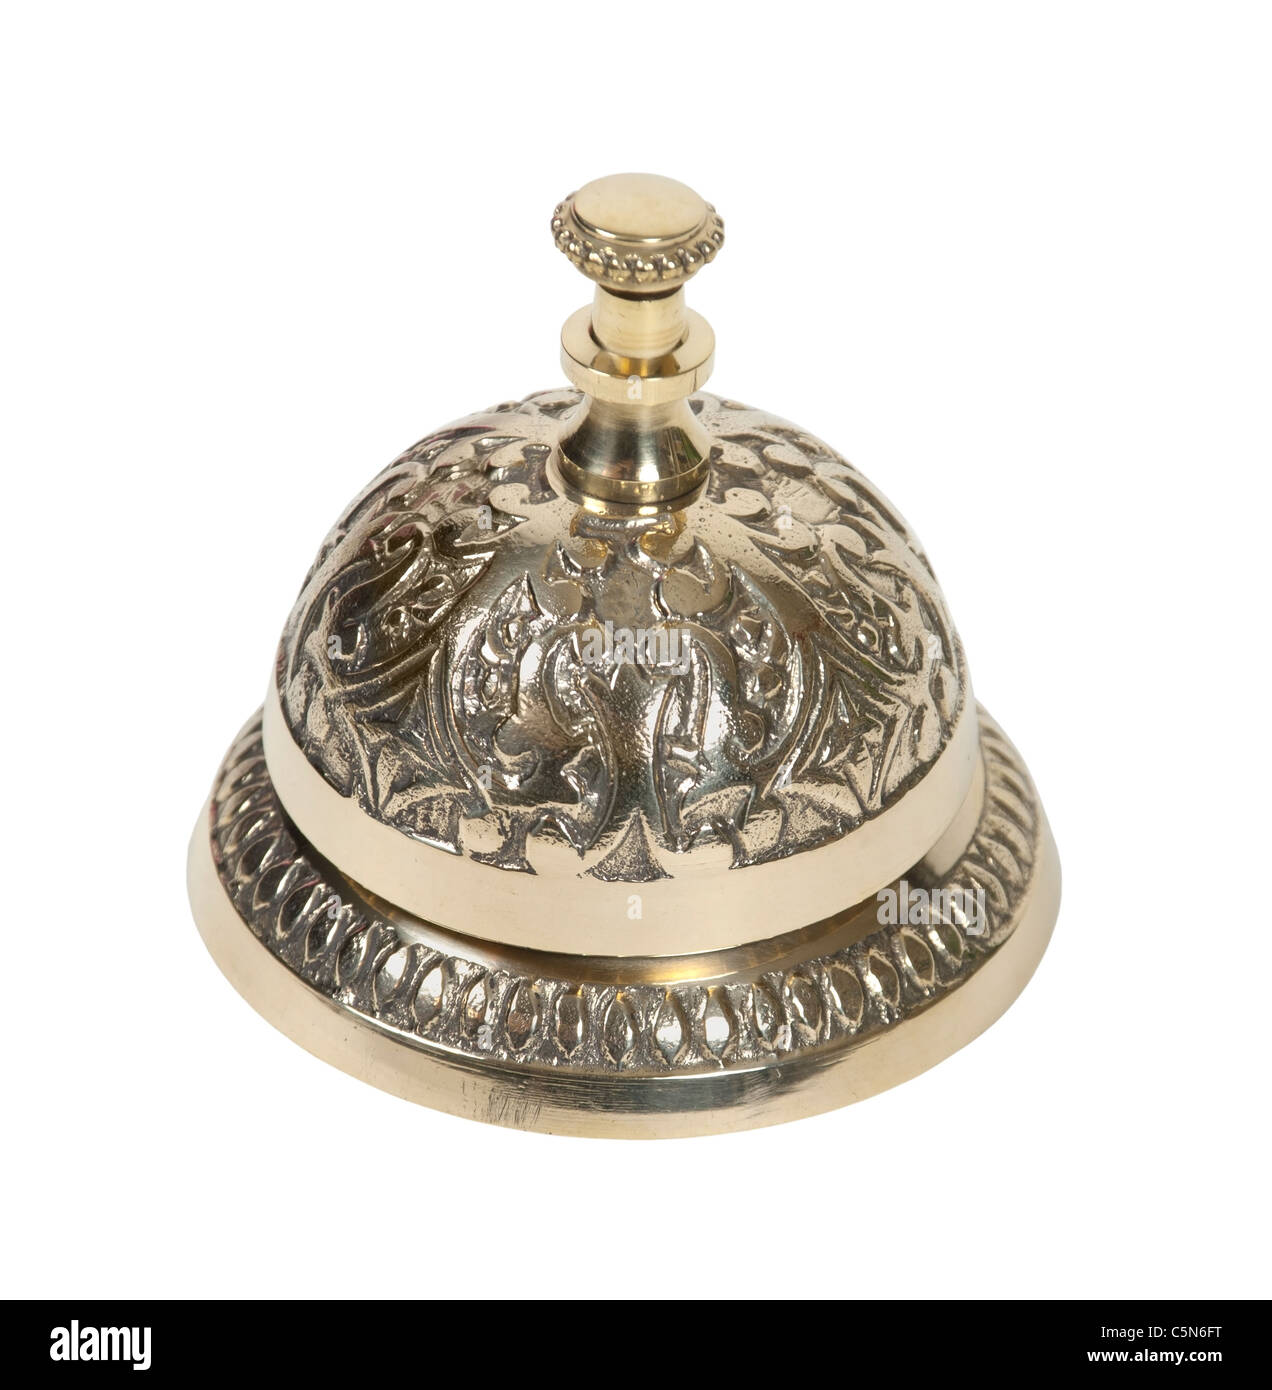 Brass intricate service bell placed on a counter and used to prompt for service - path included - Stock Image